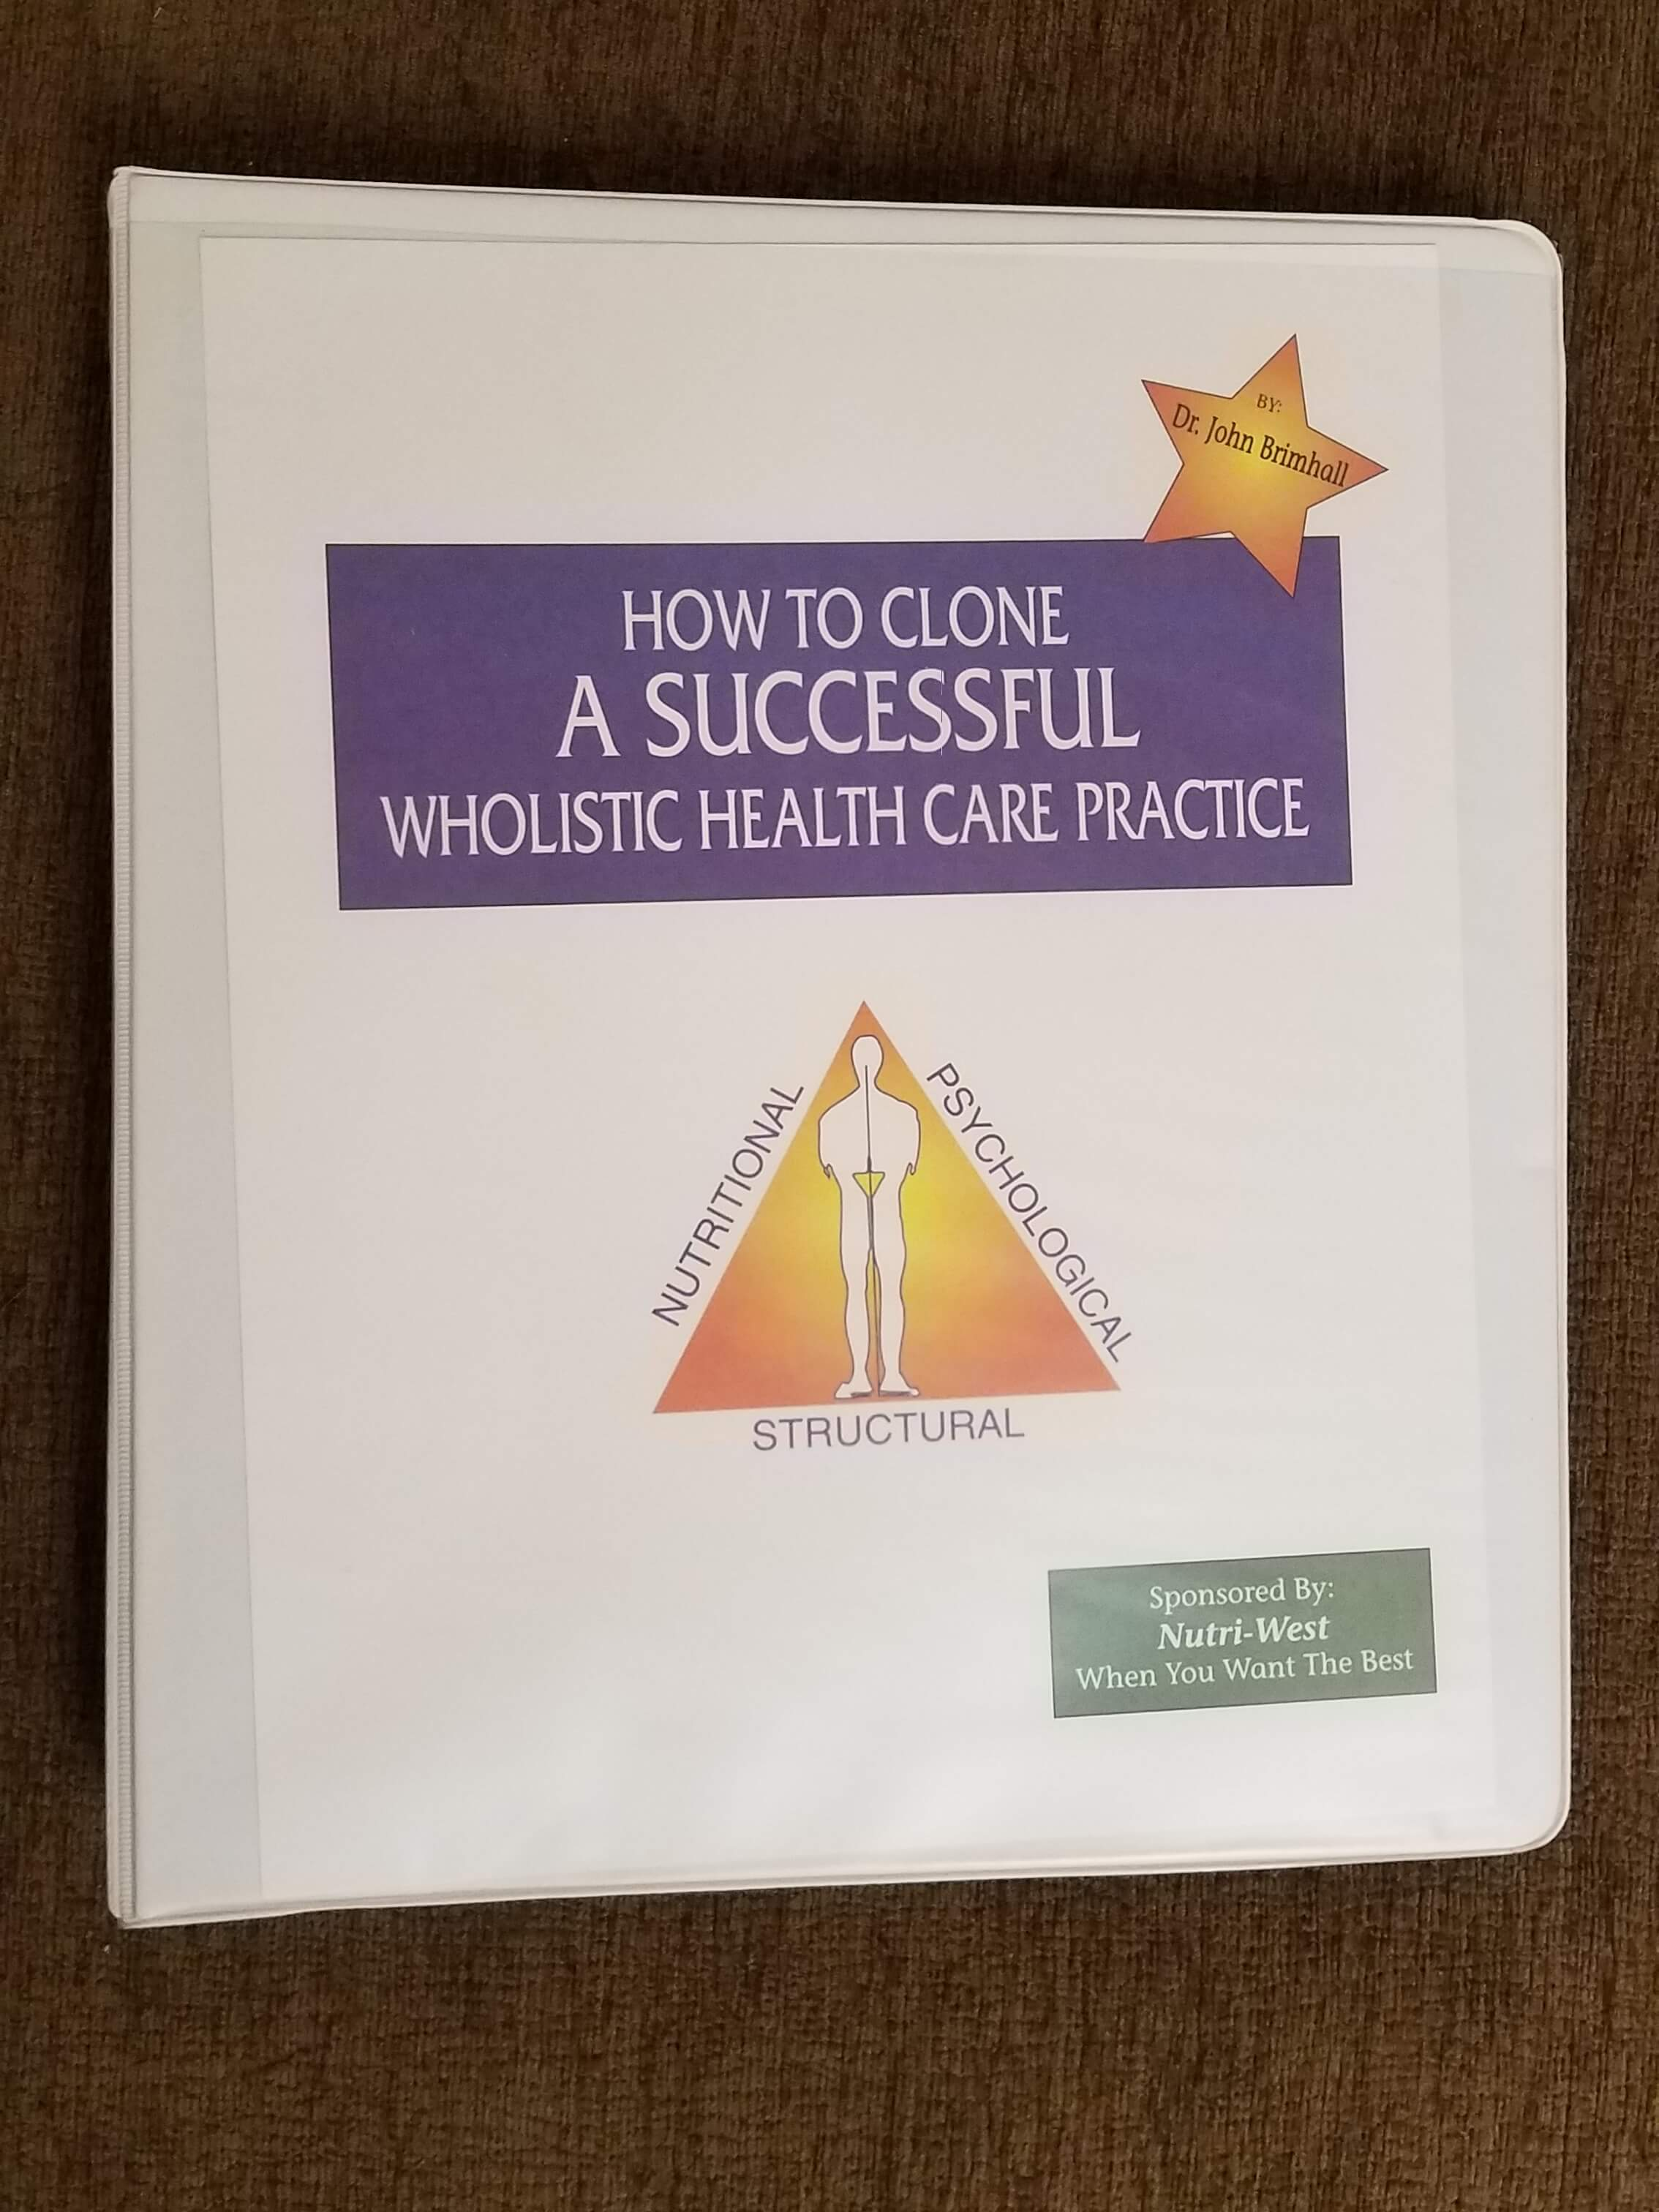 How to Clone a Successful Wholistic Health Care Practice by Dr. Brimhall